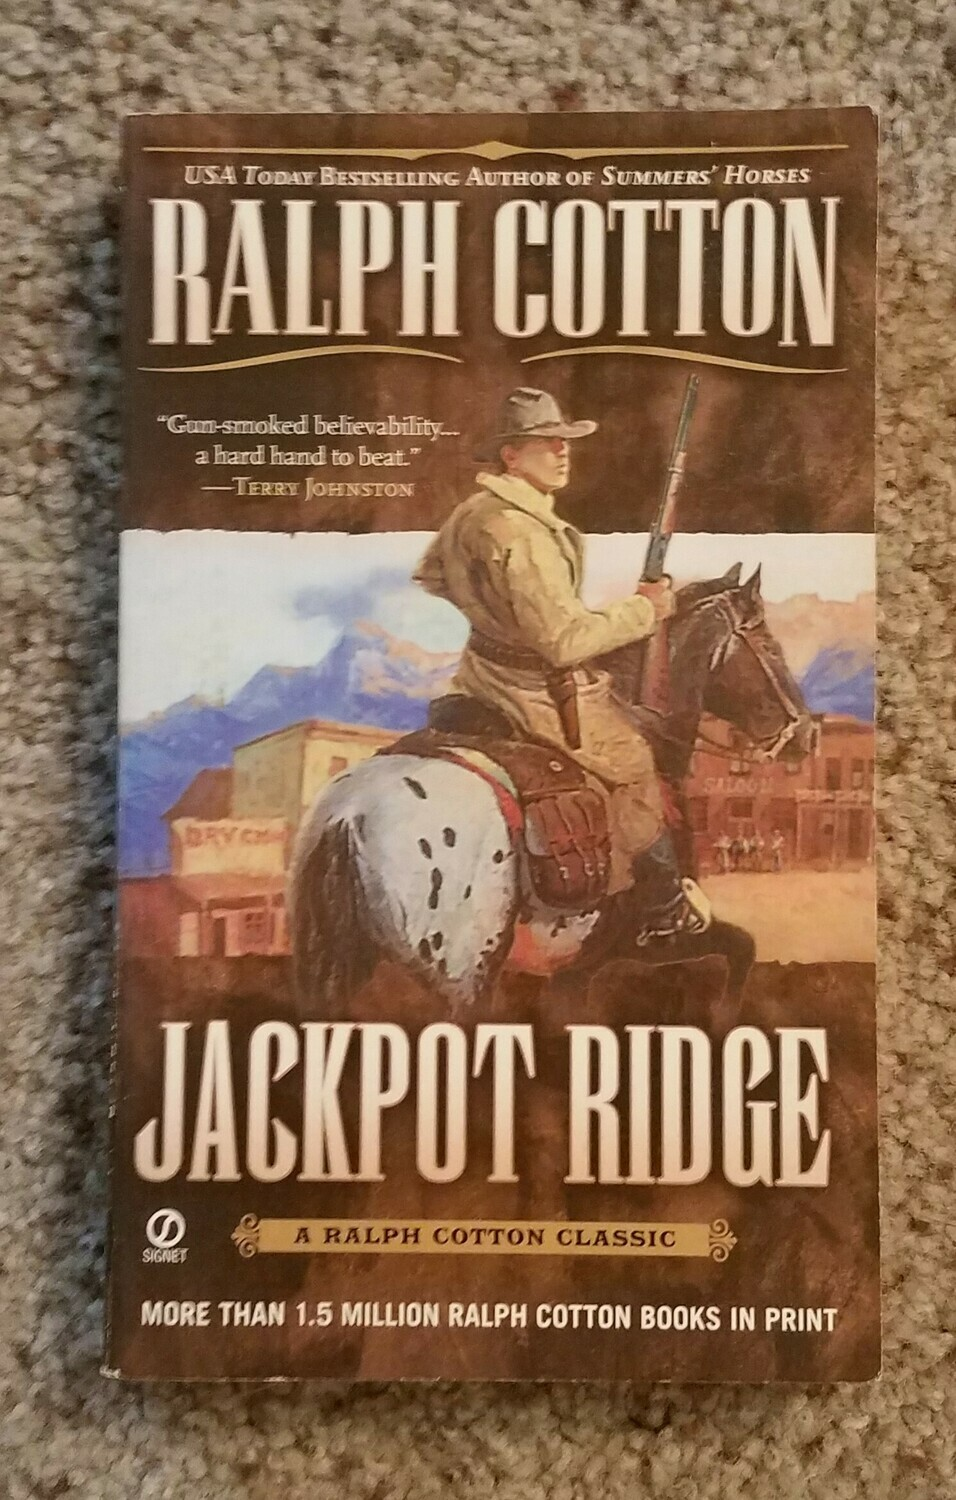 Jackpot Ridge by Ralph Cotton